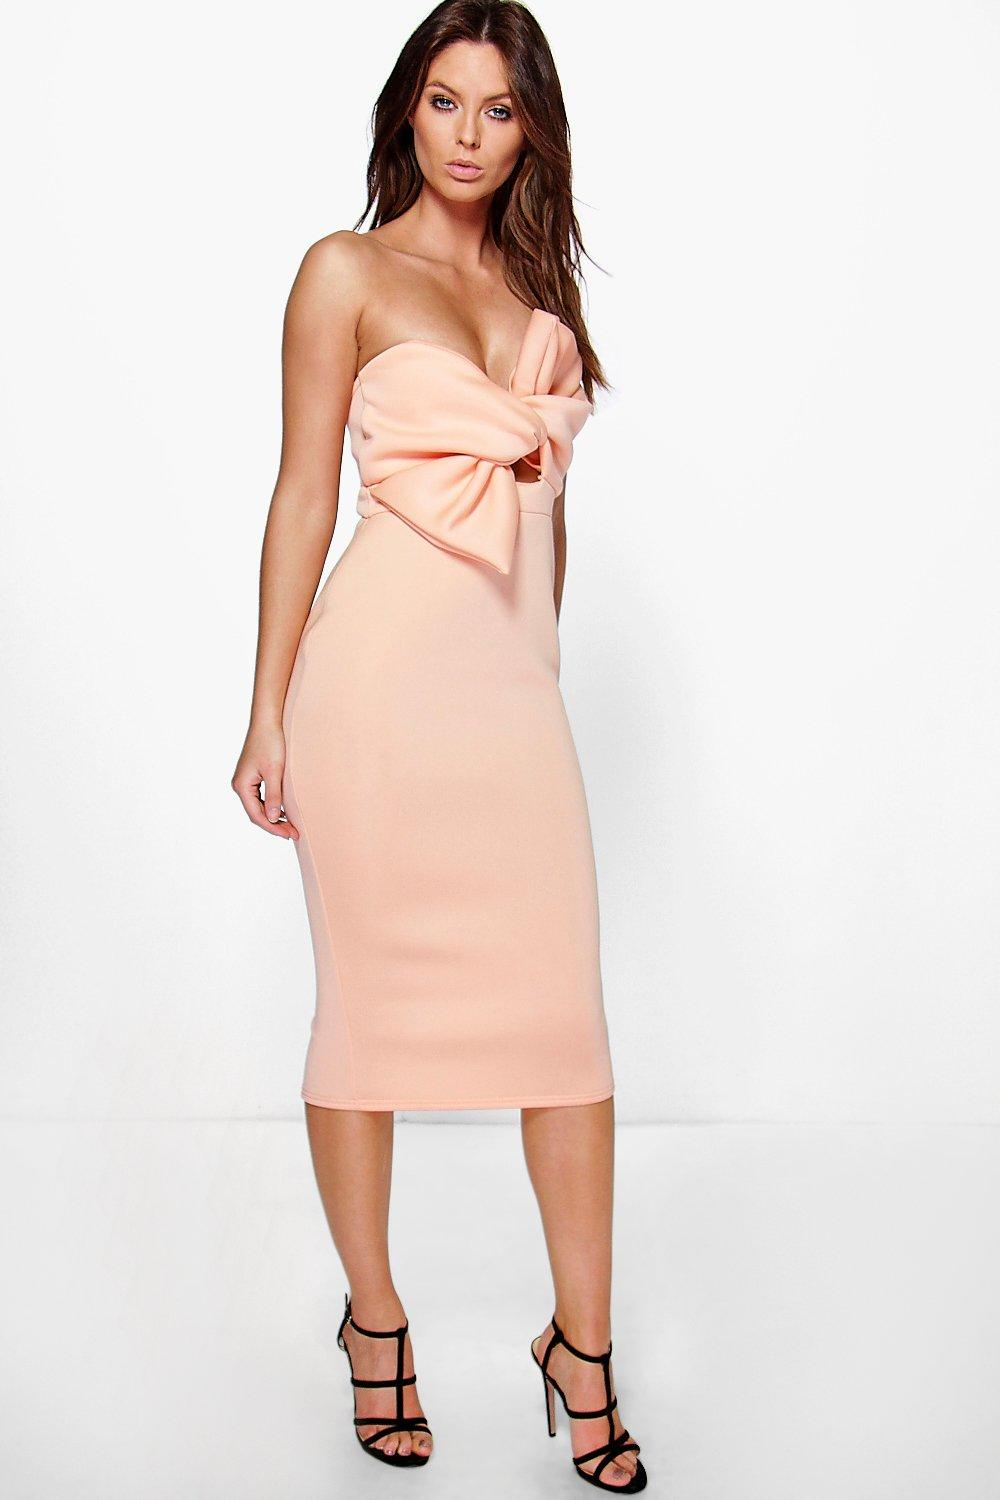 75383a0eba1c Noreen Bow Knot Front Detail Midi Dress. Hover to zoom